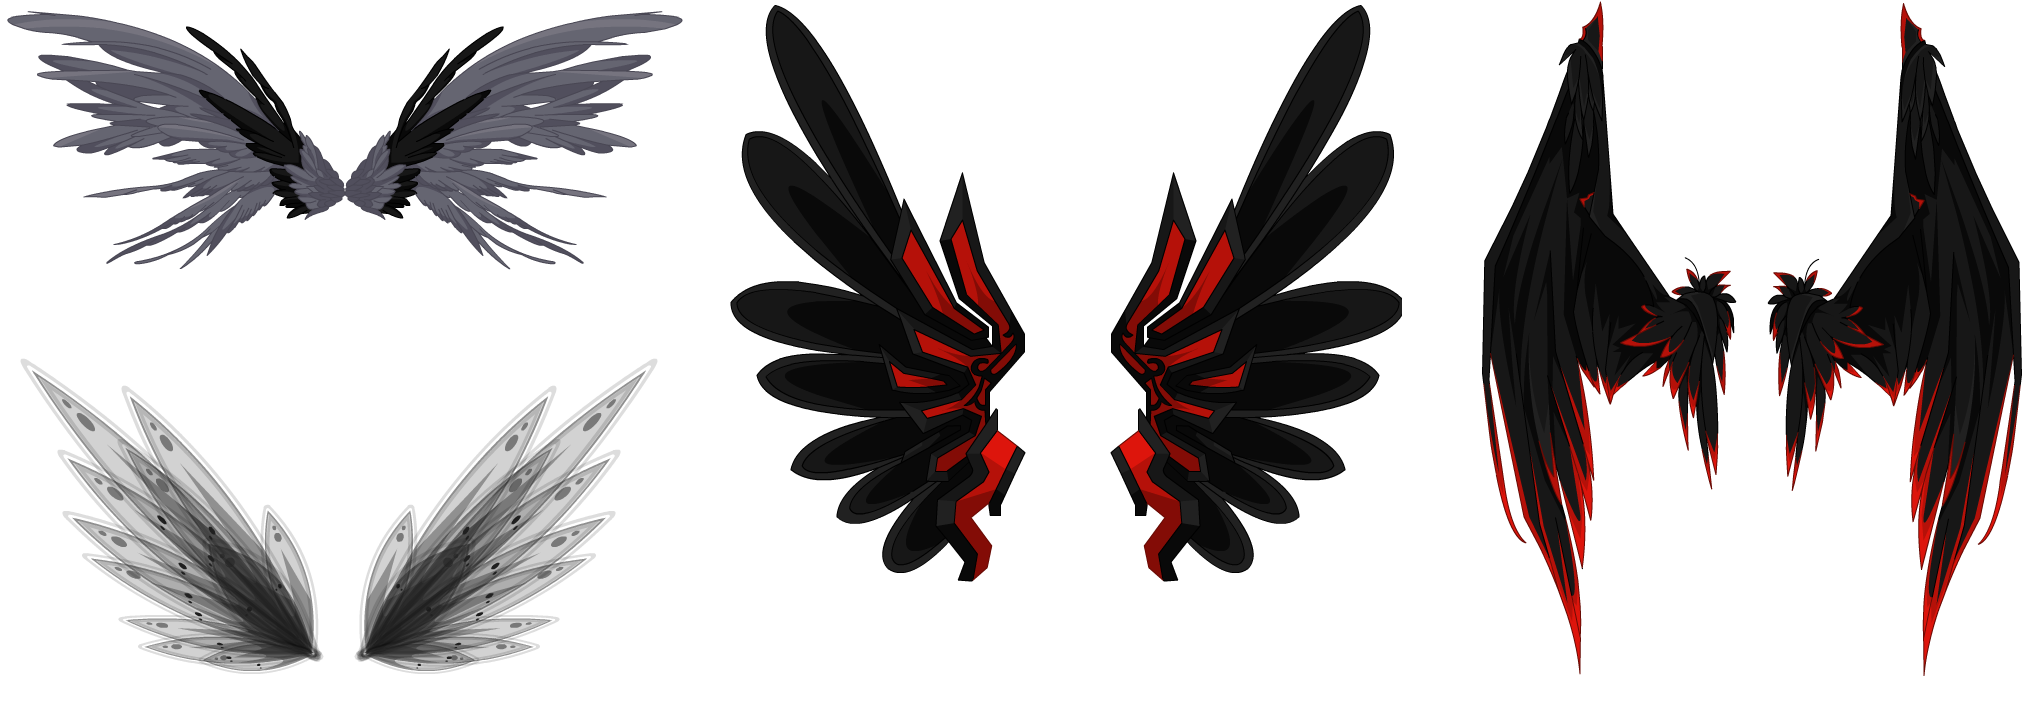 Dark Wings Dark10 dark hair dark wings